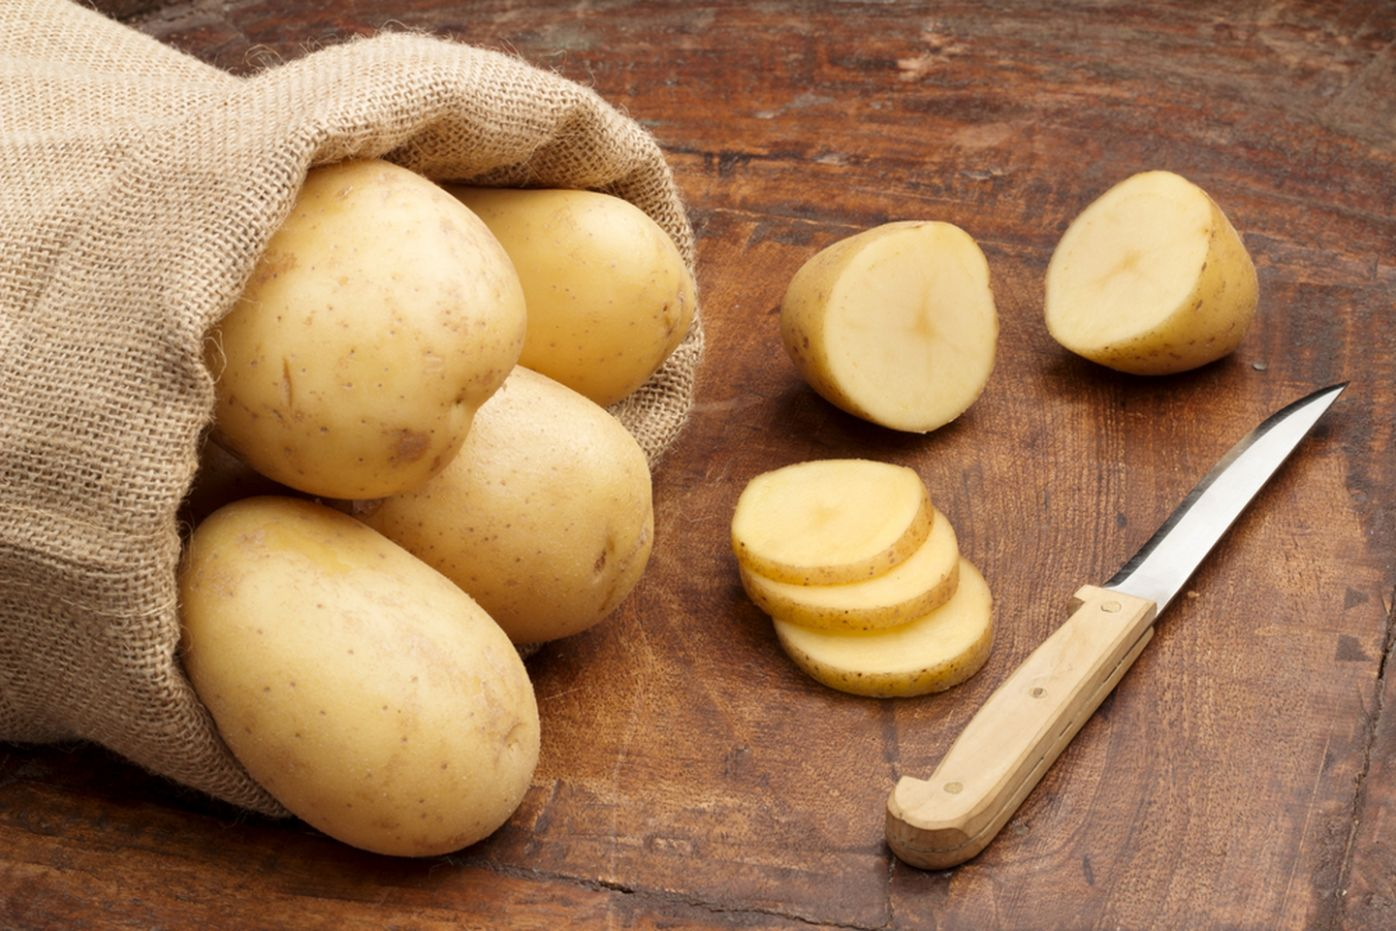 Kid-Friendly Oven Roasted Potato recipe | MNN - Mother Nature Network